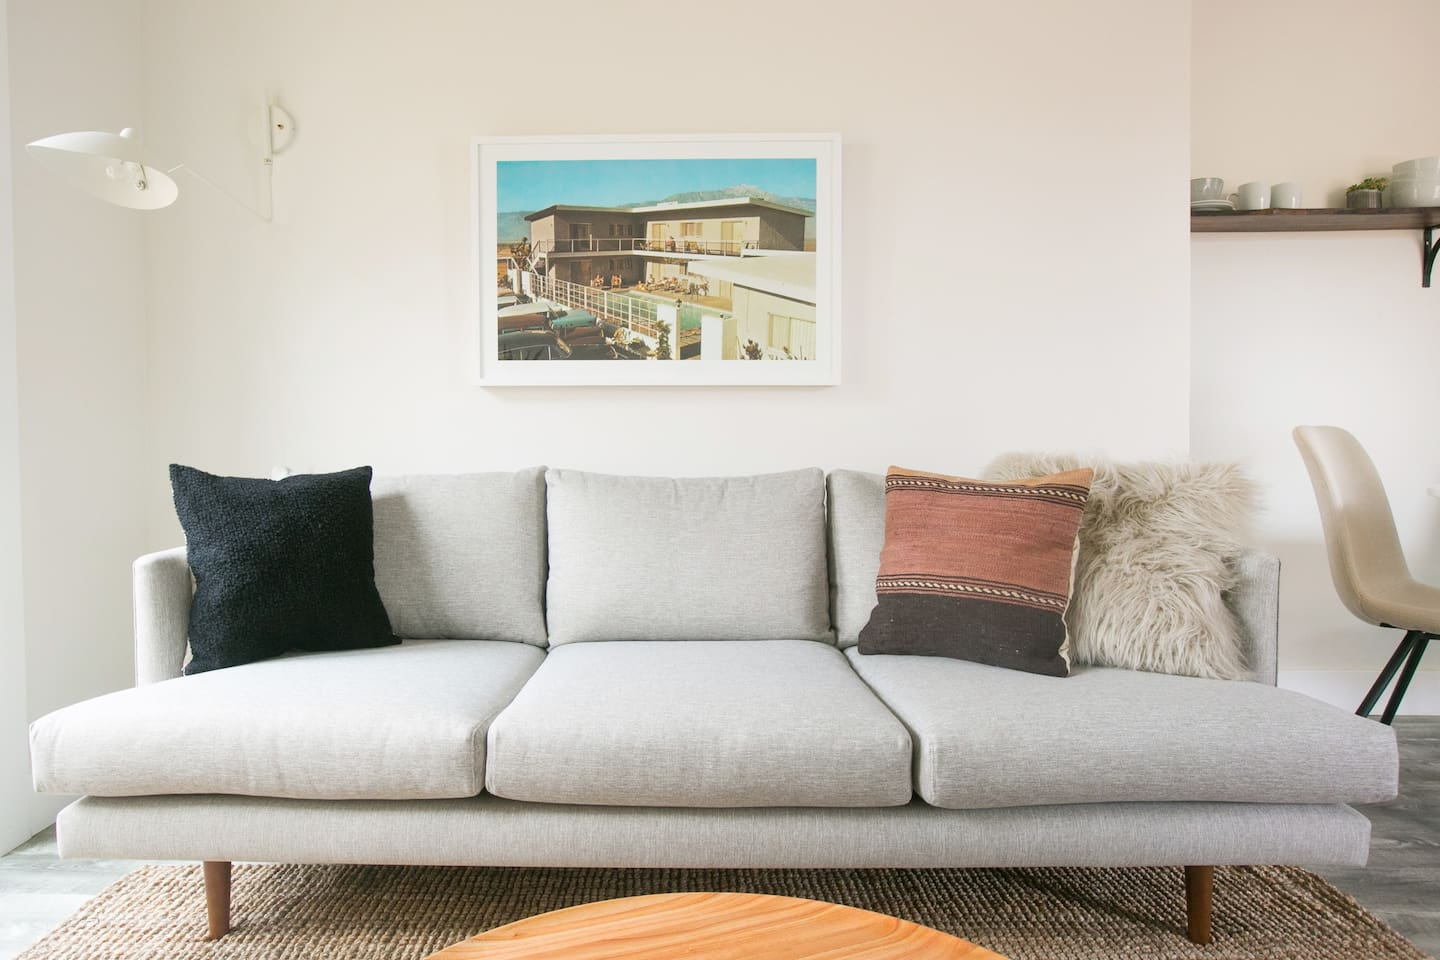 Stunning 1BR in La Jolla by Sonder - Apartments for Rent in San ...